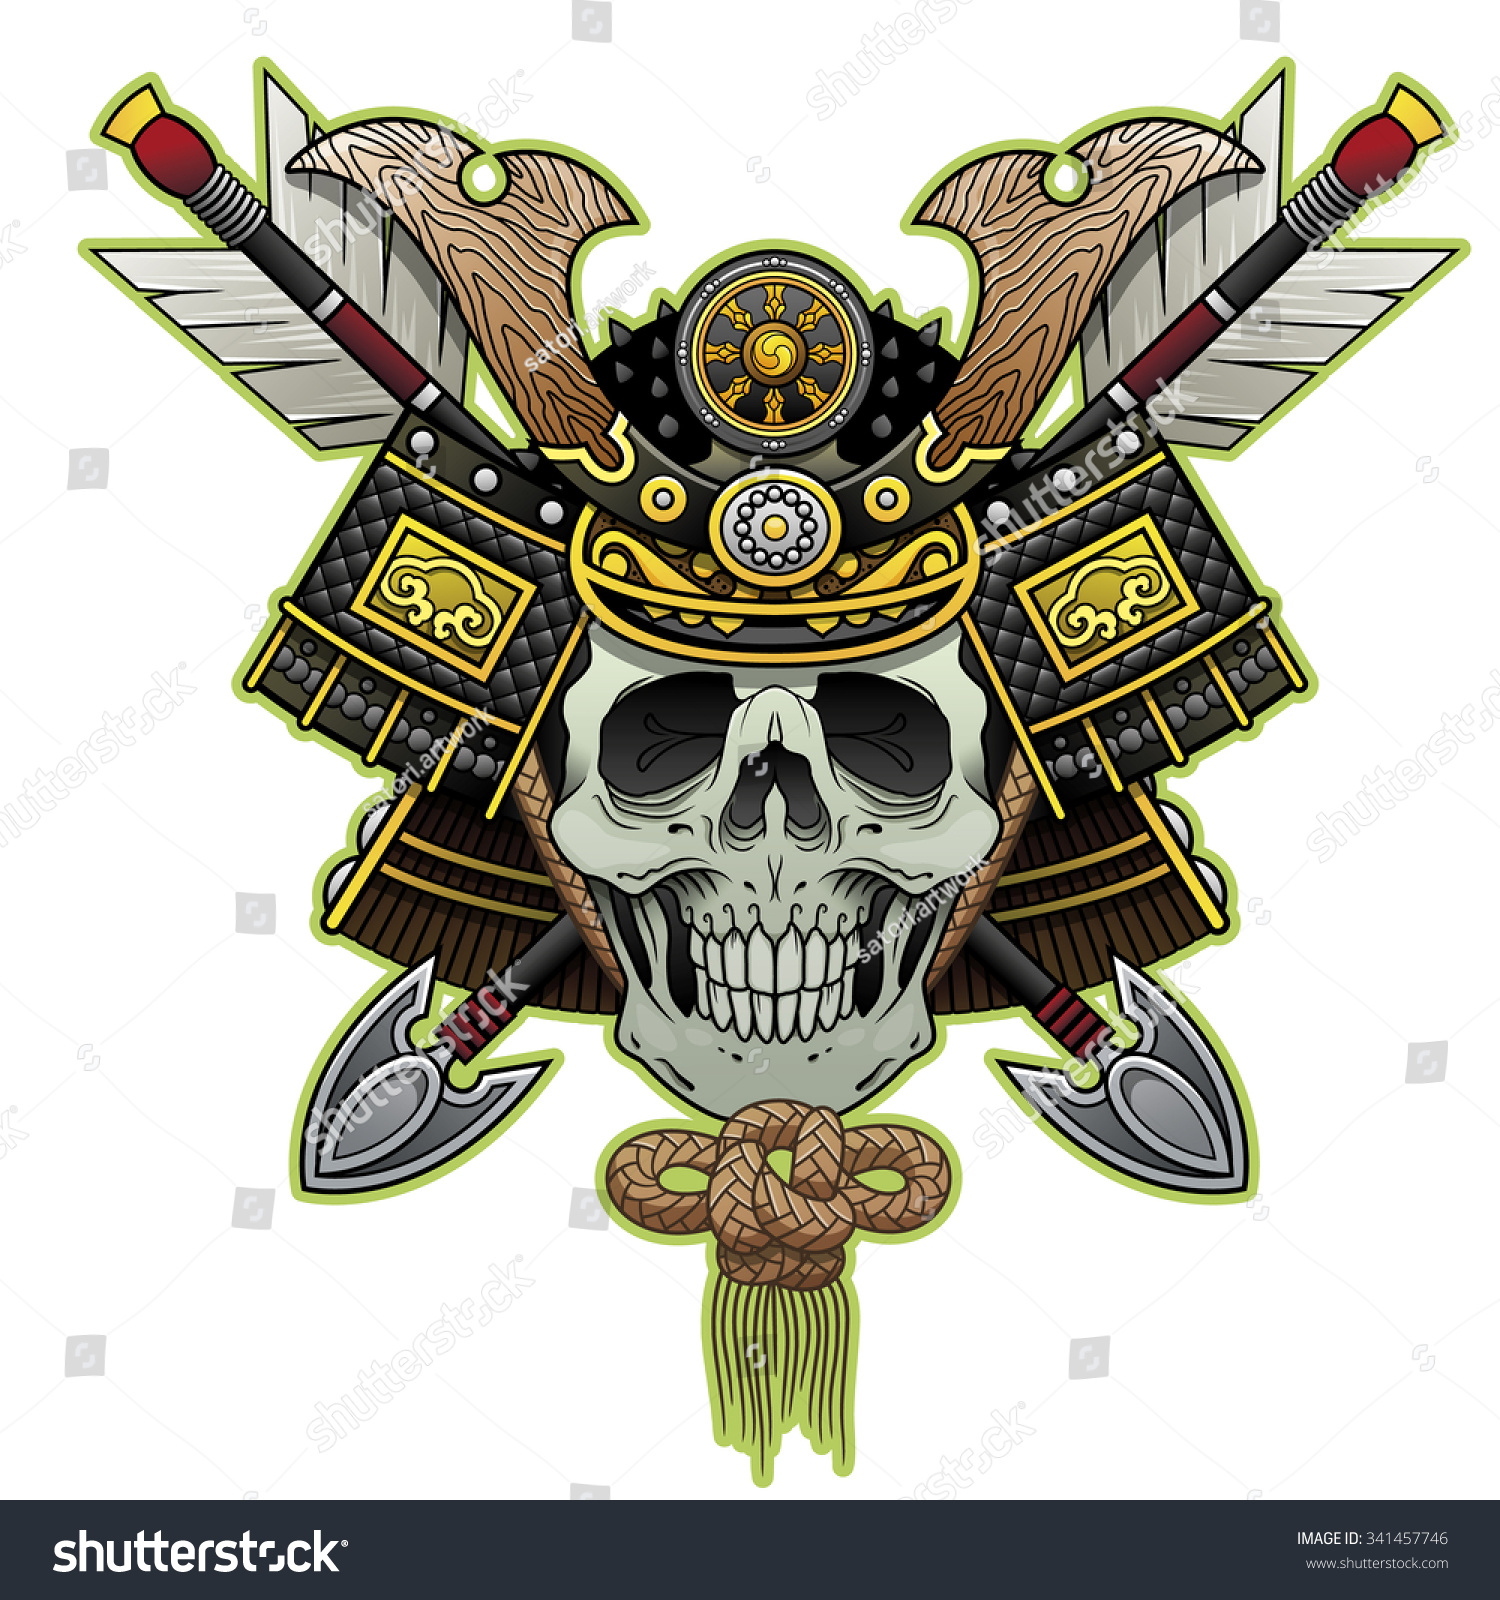 Samurai skull color